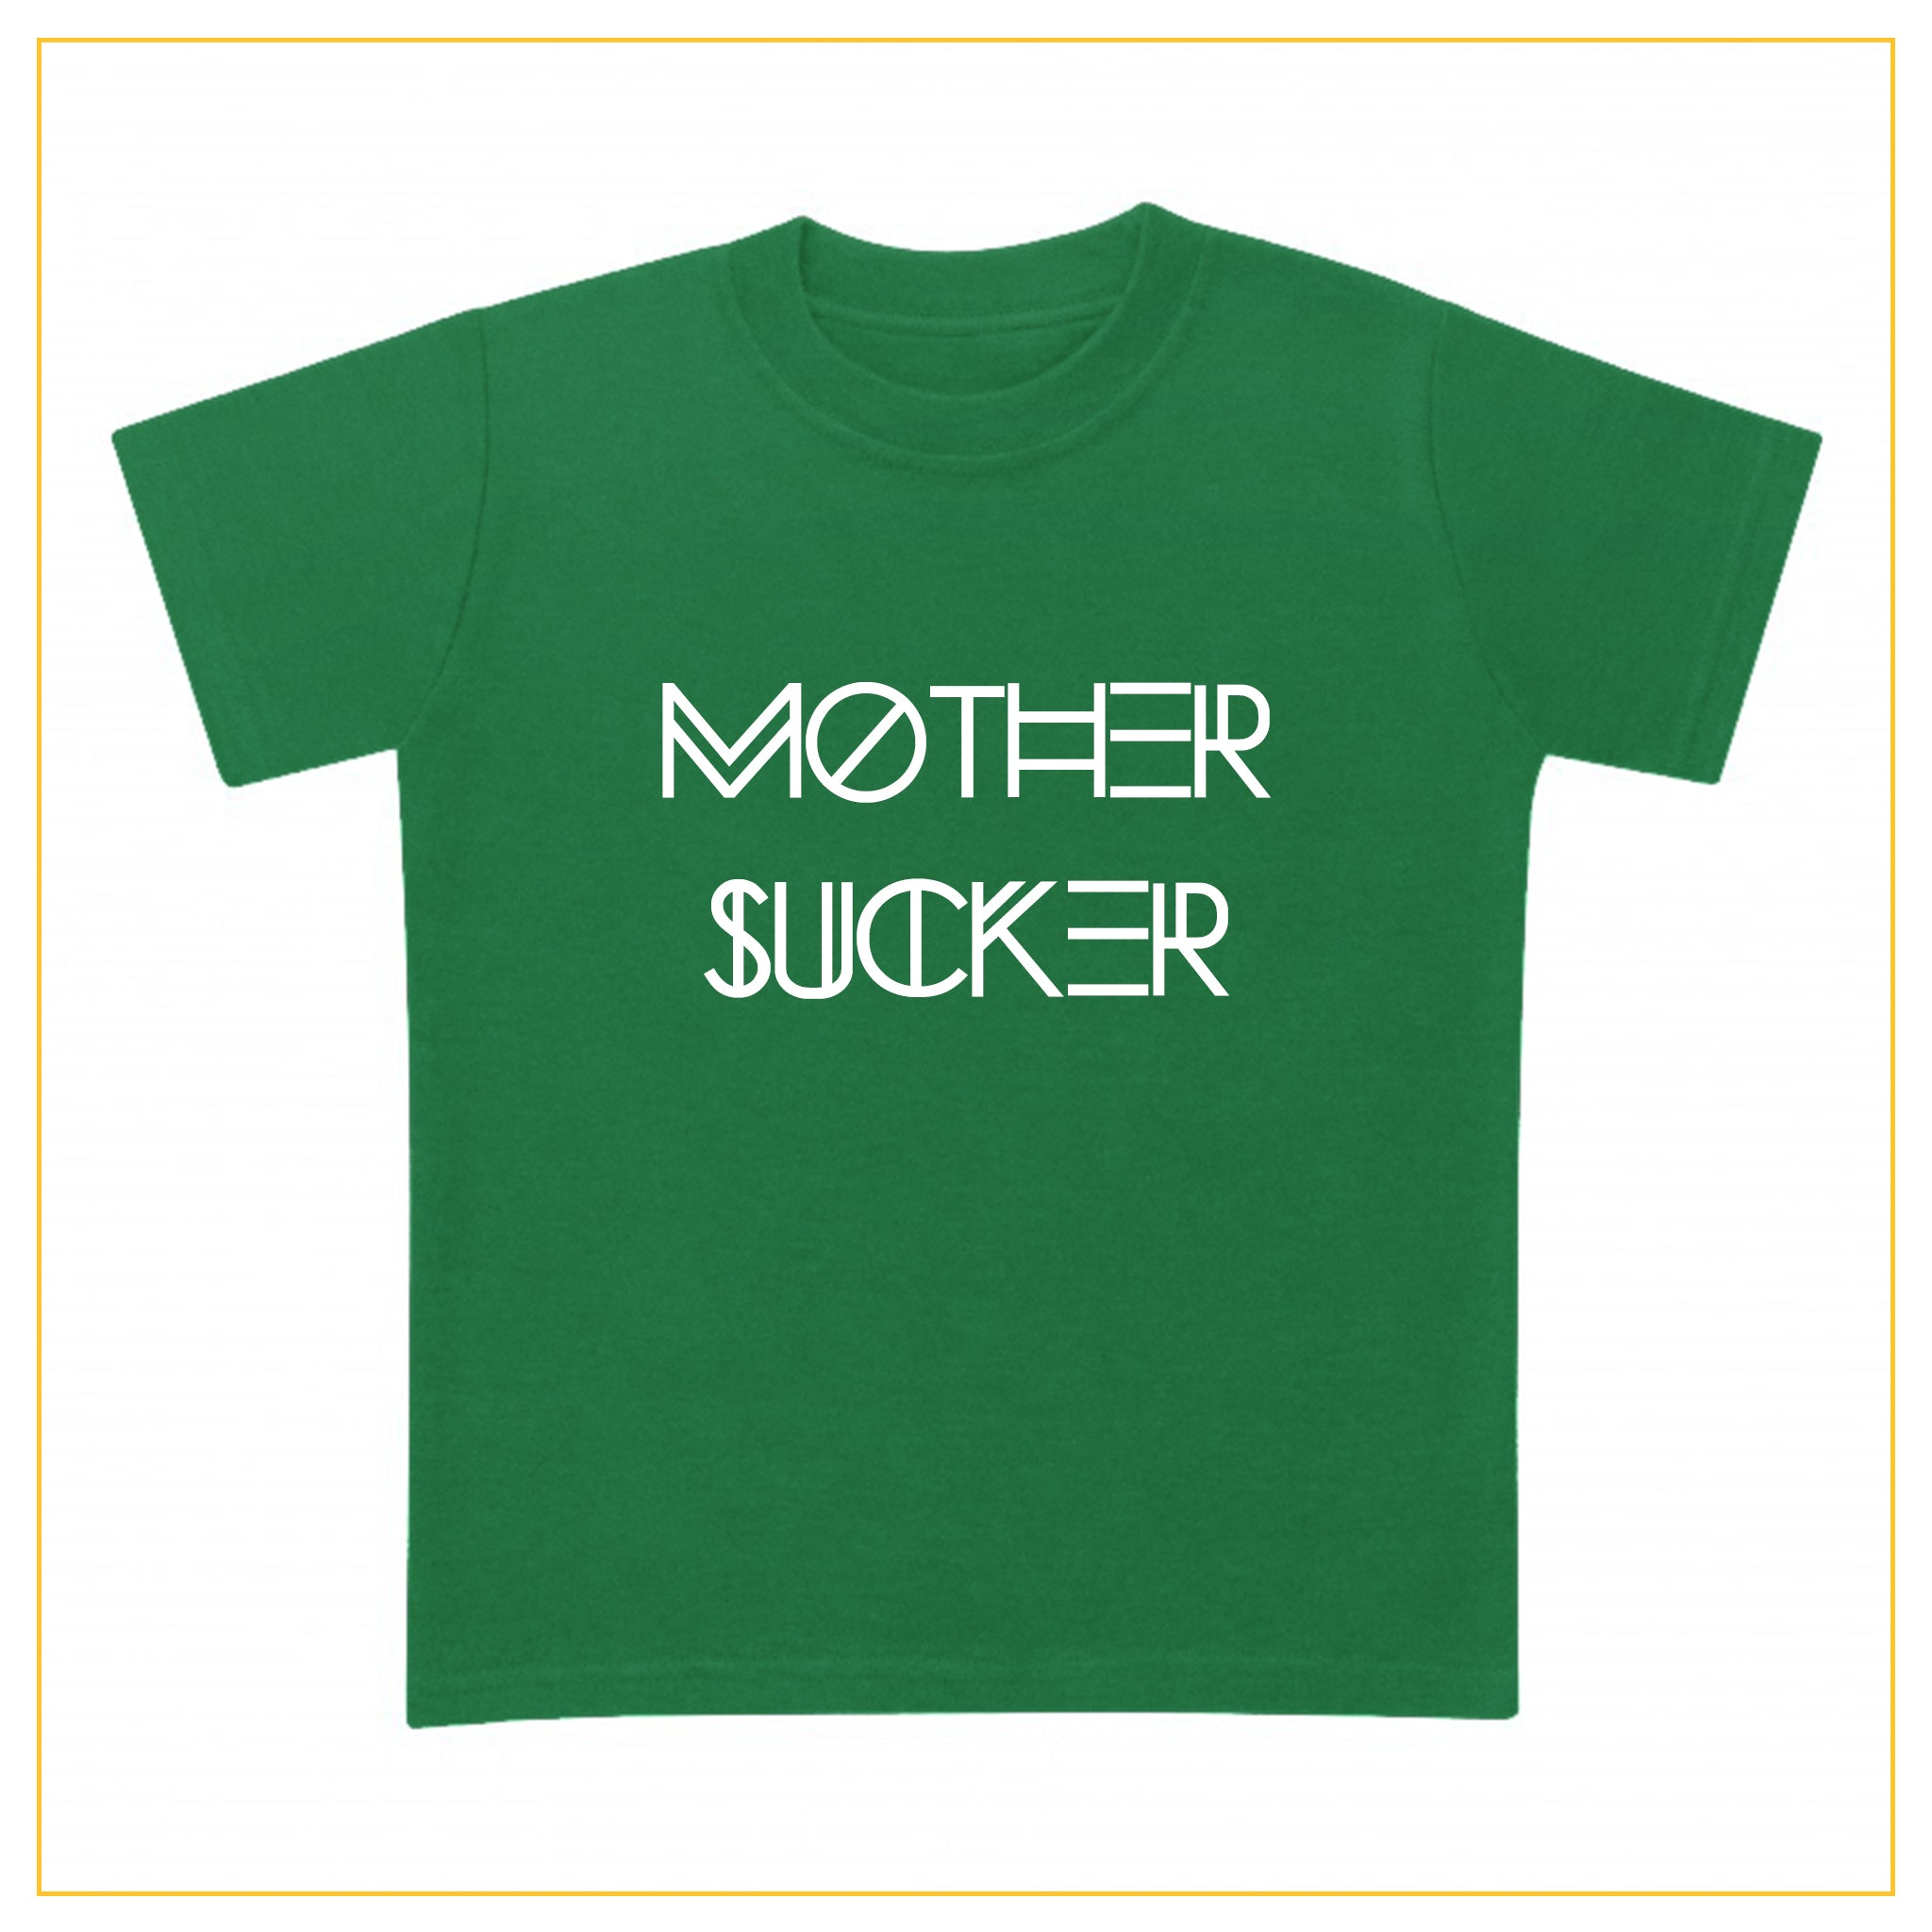 green t-shirt for babies with a mother sucker print